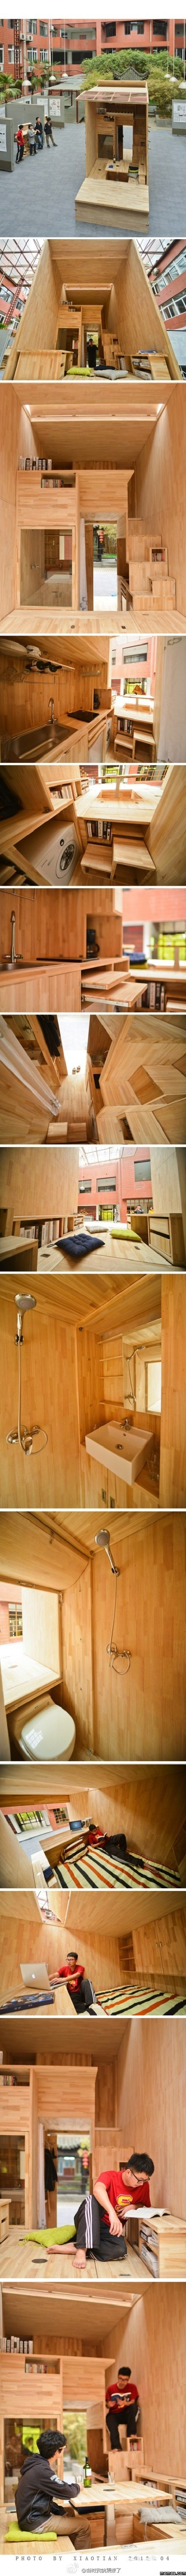 Student architect in China constructs his own 75 ft² wooden house complete